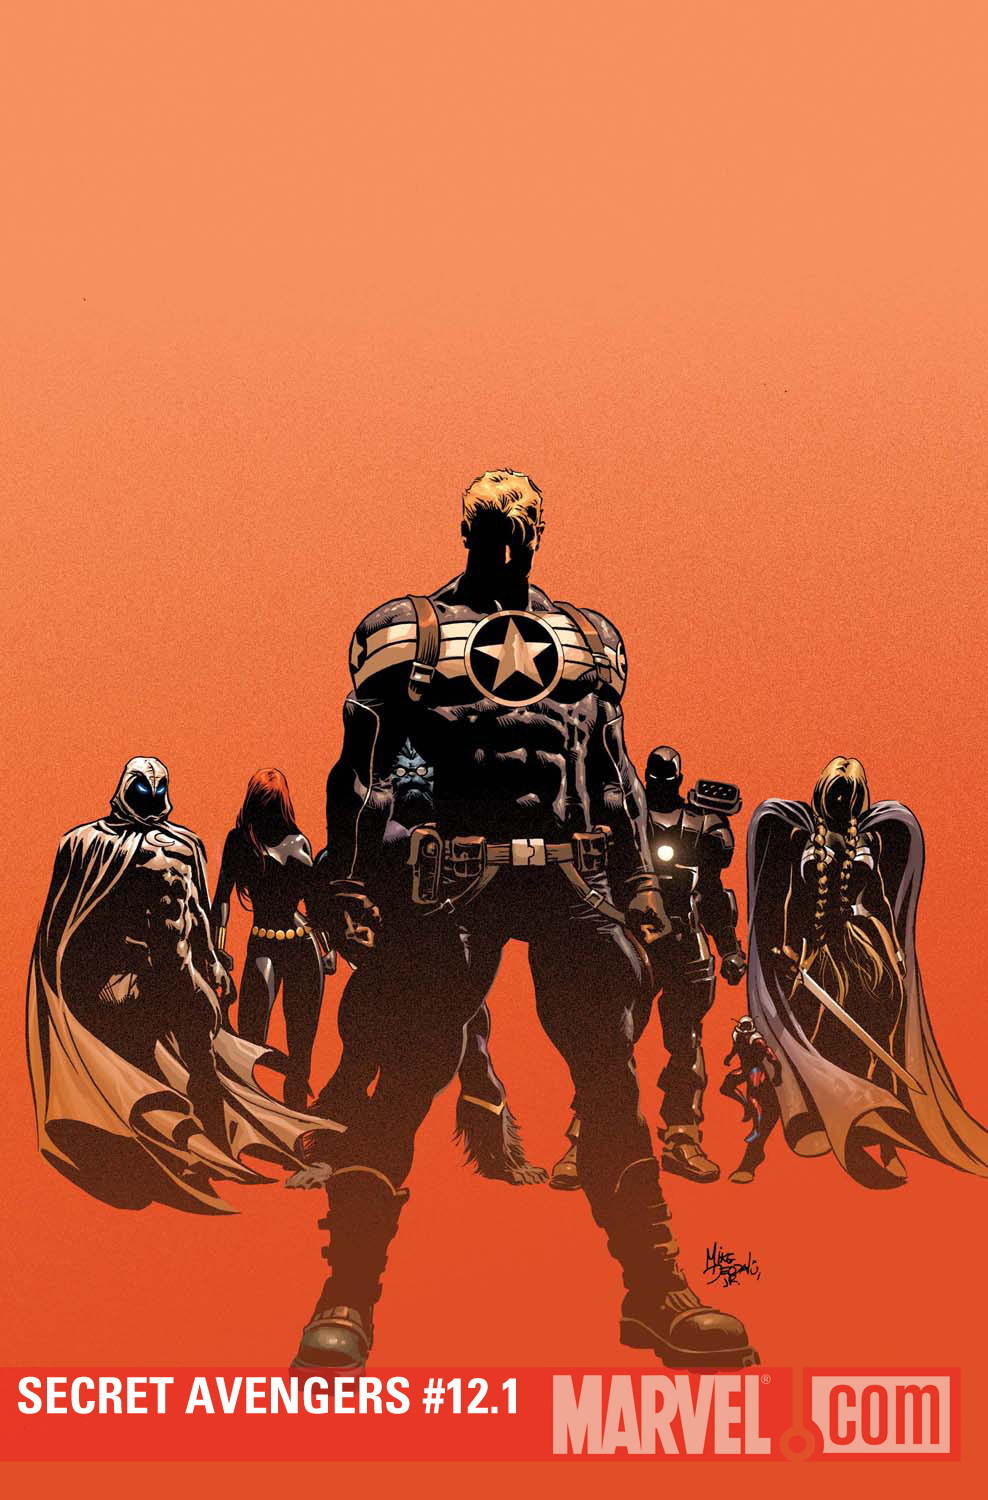 Secret Avengers #12.1 cover by Mike Deodato